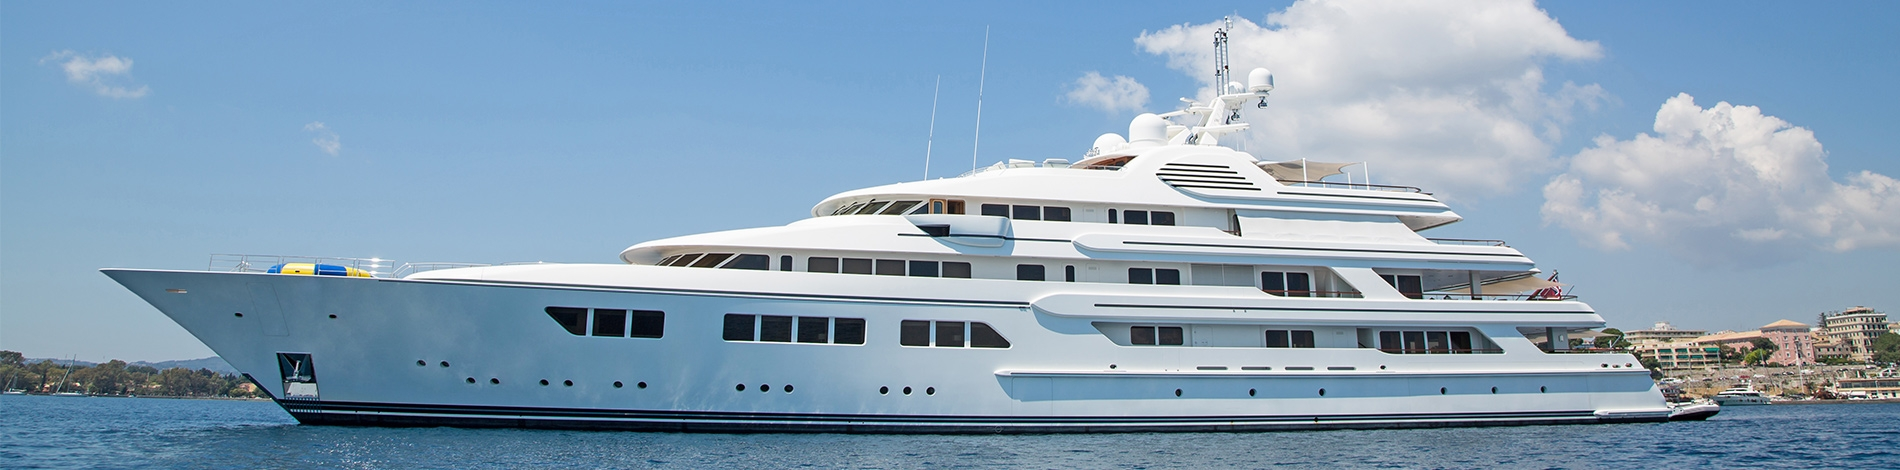 Yacht Sales & Purchase